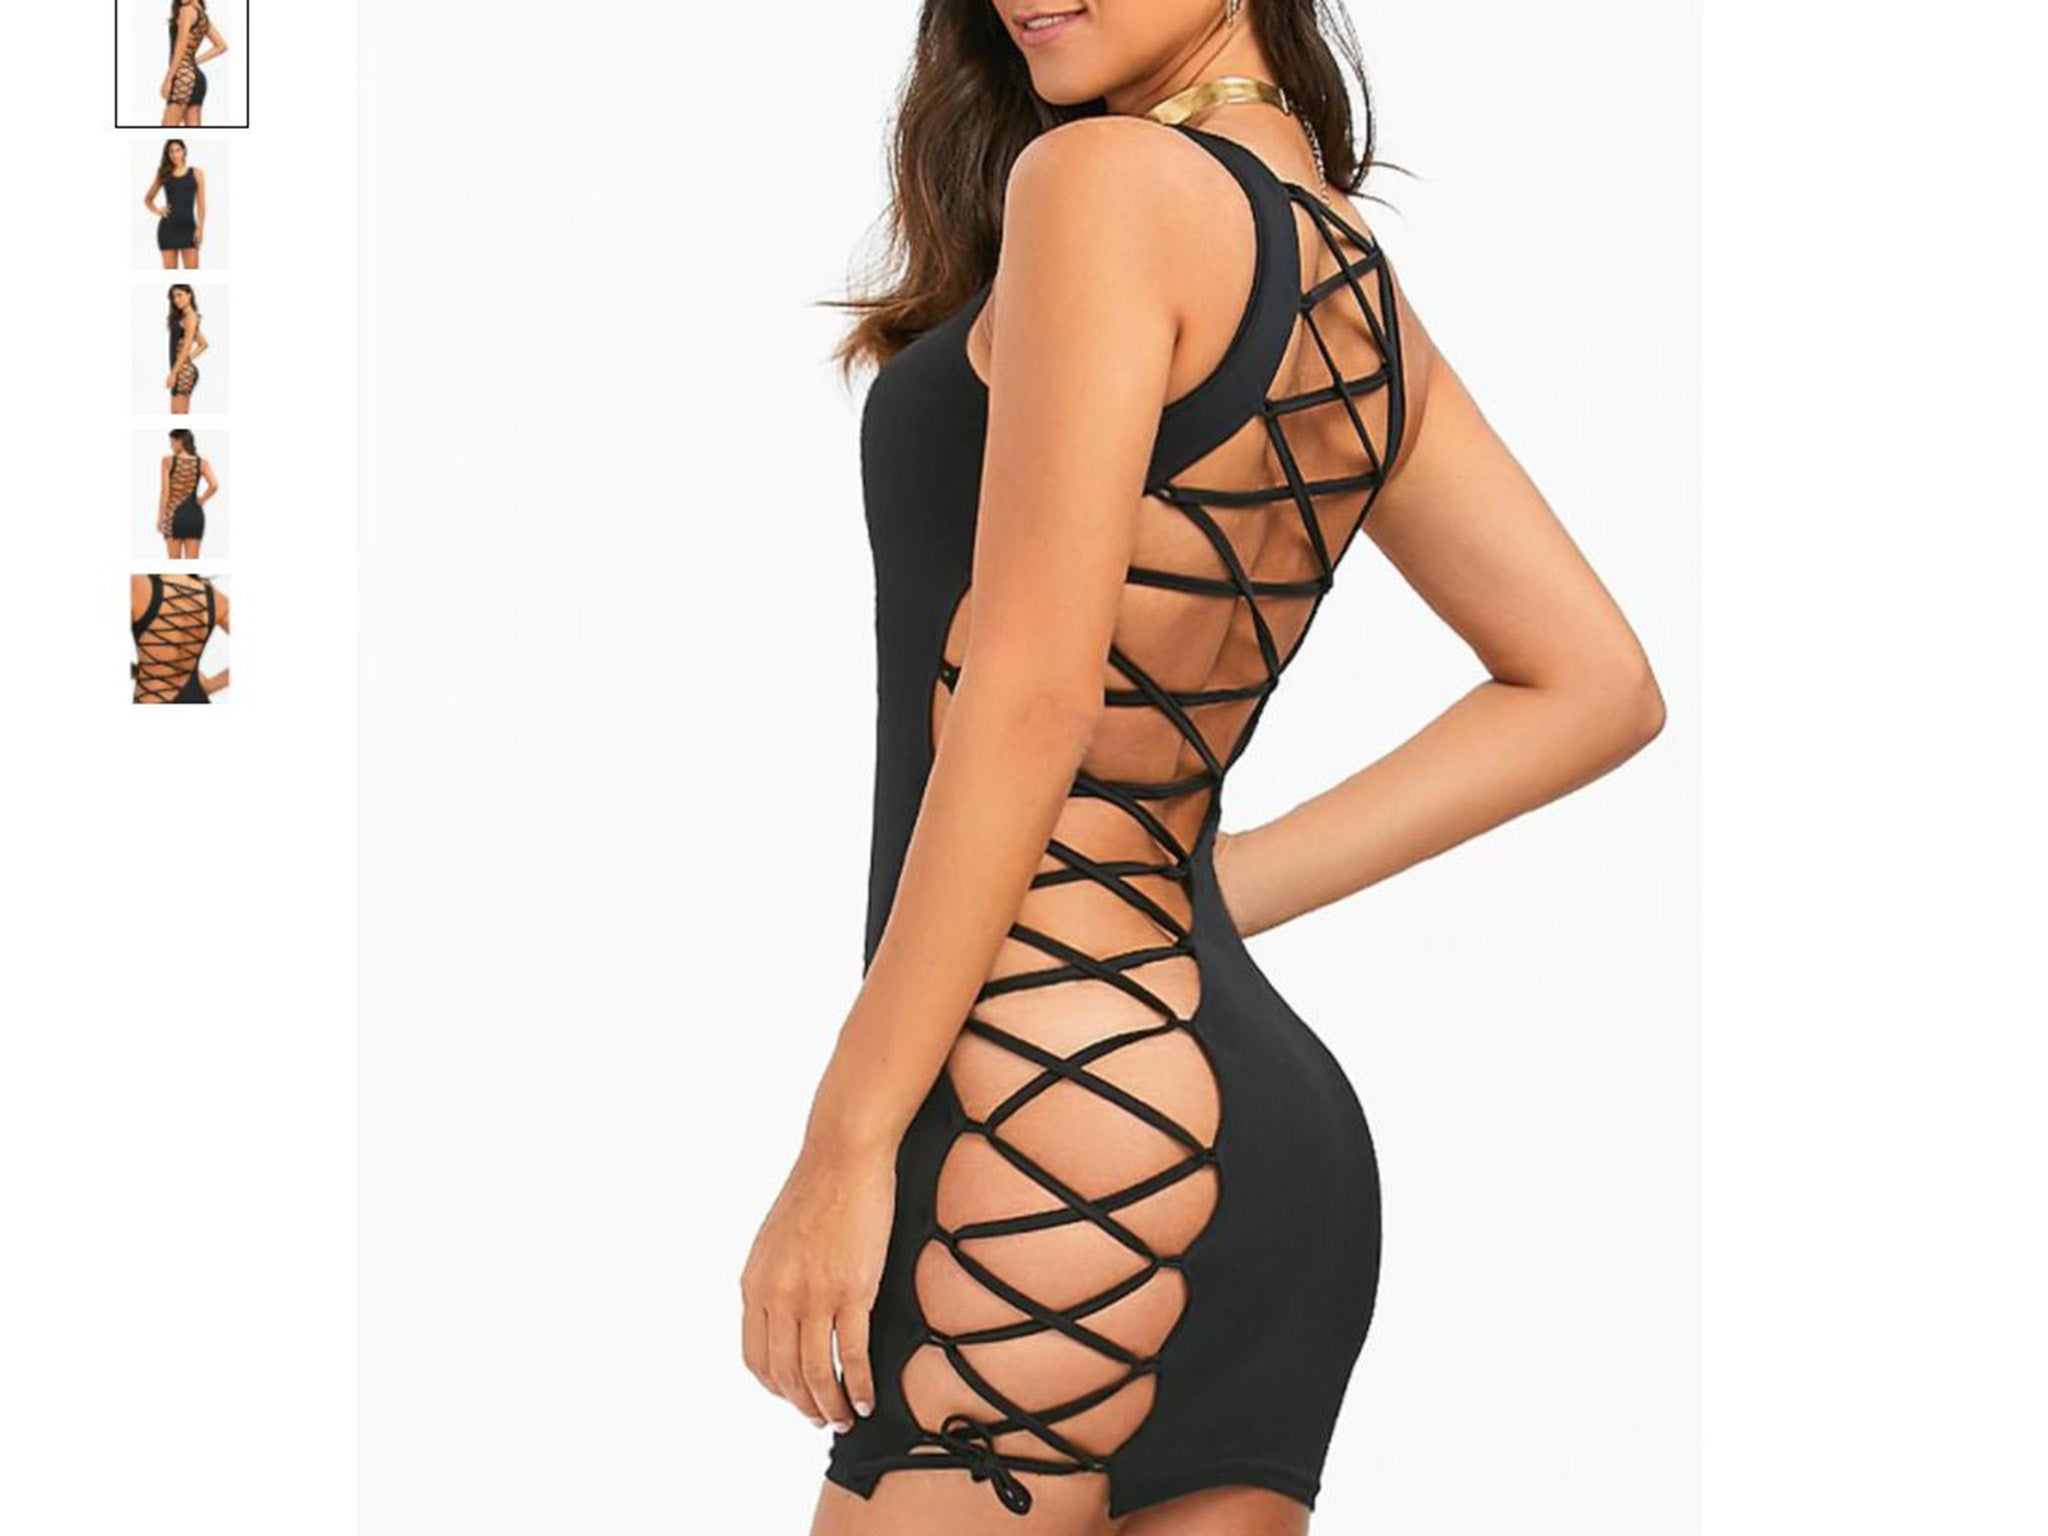 Revealing lace-up dress sparks outrage on Mumsnet: 'An accident waiting to happen'